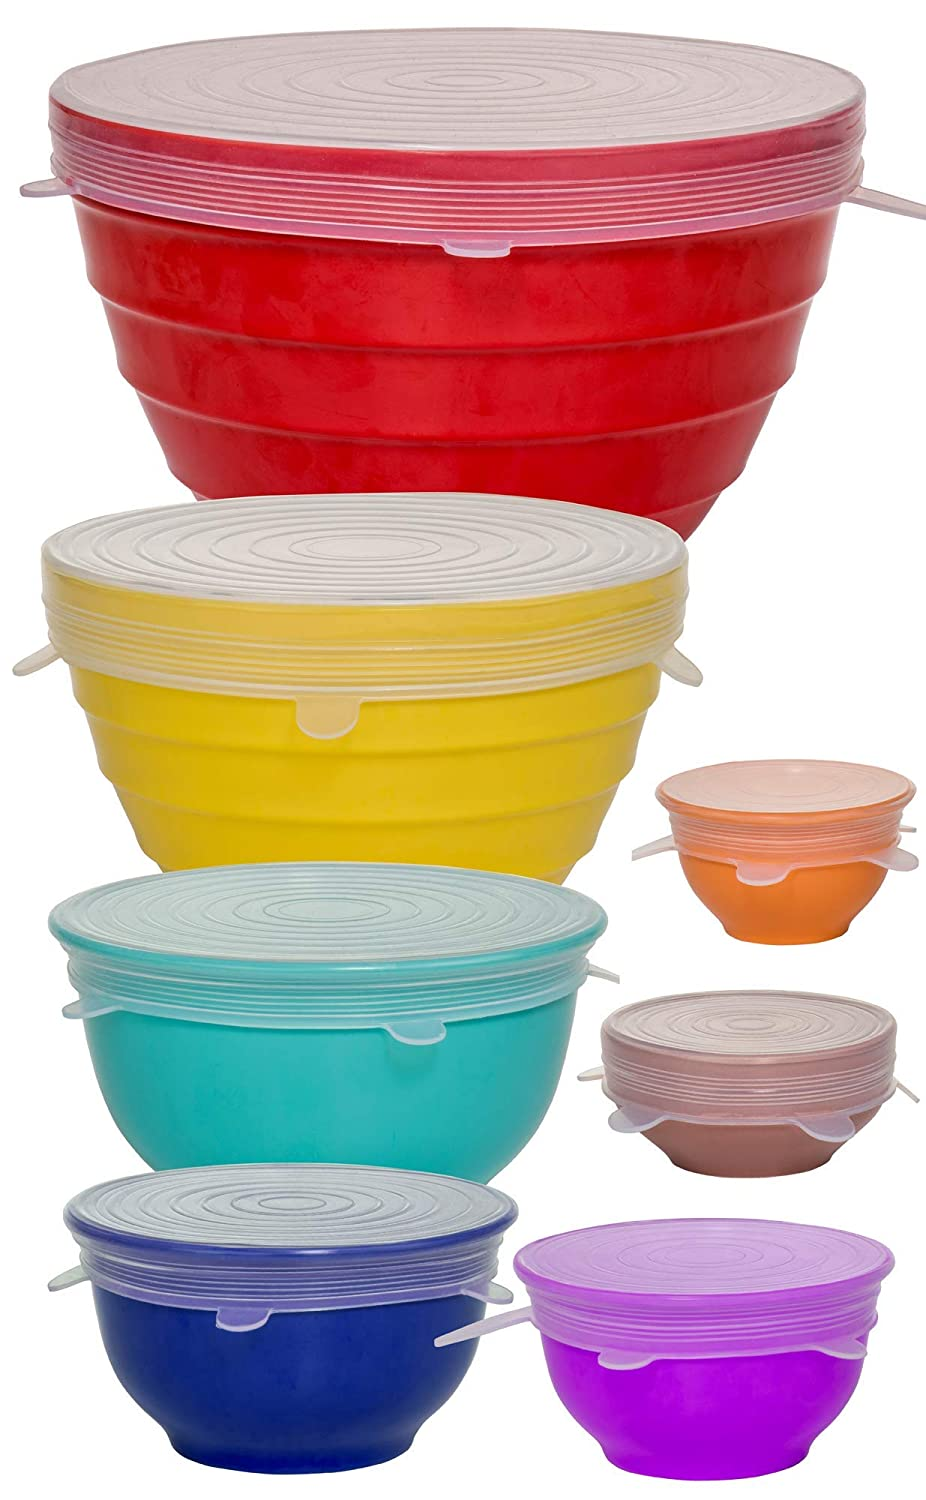 Reusable Silicone Stretch Lids - Incl. Exclusive XL size - Set Of 7 Versatile Silicon Covers - Fits Any Container Or Bowl To Keep Food Fresh - For Storing & Reheating- Easy To Clean- Bonus Storage Bag